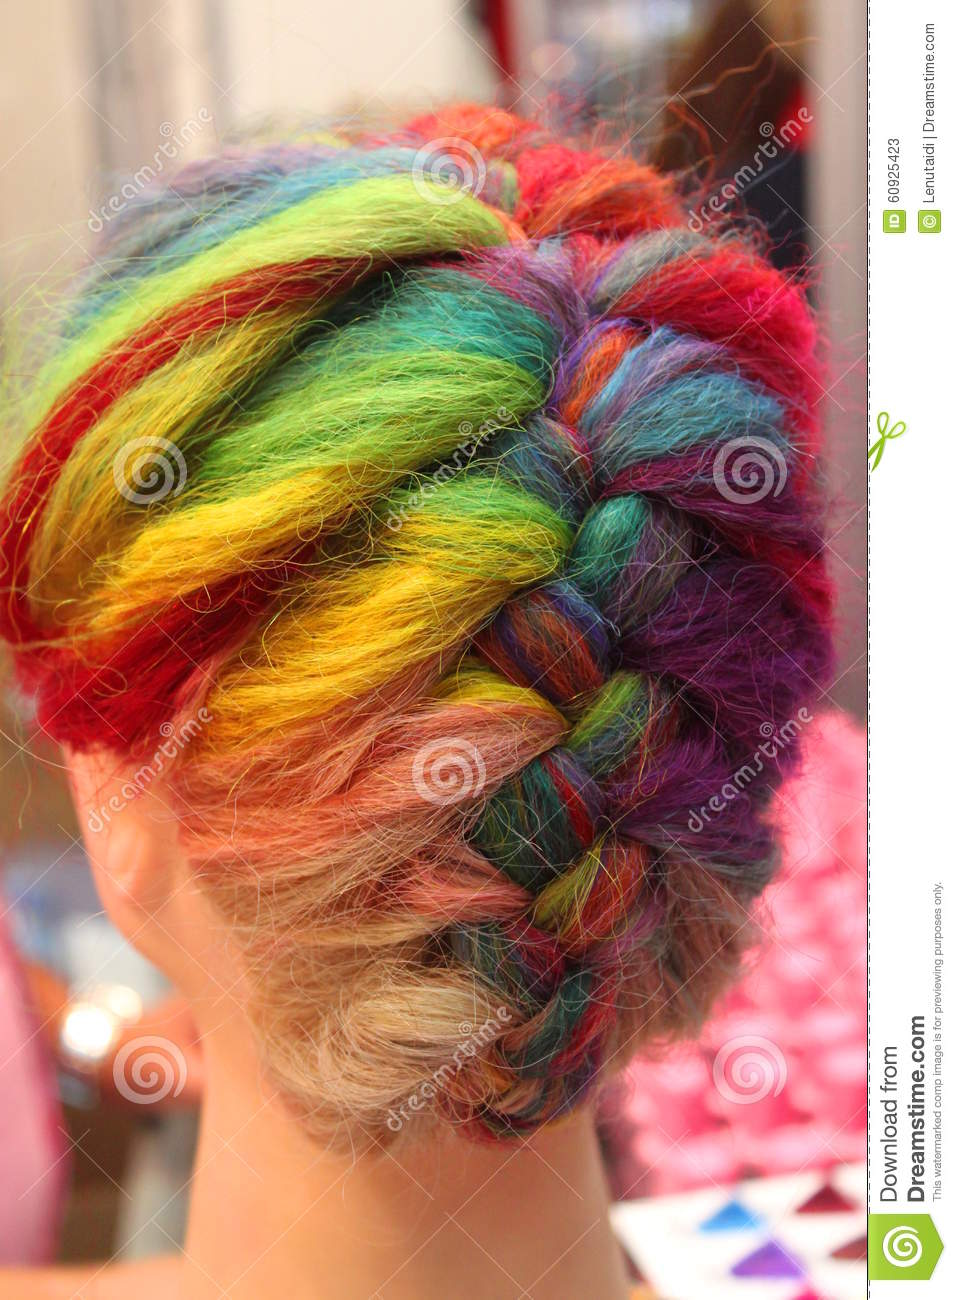 Hair Colors Palette Dyed Hair Stock Image Image Of